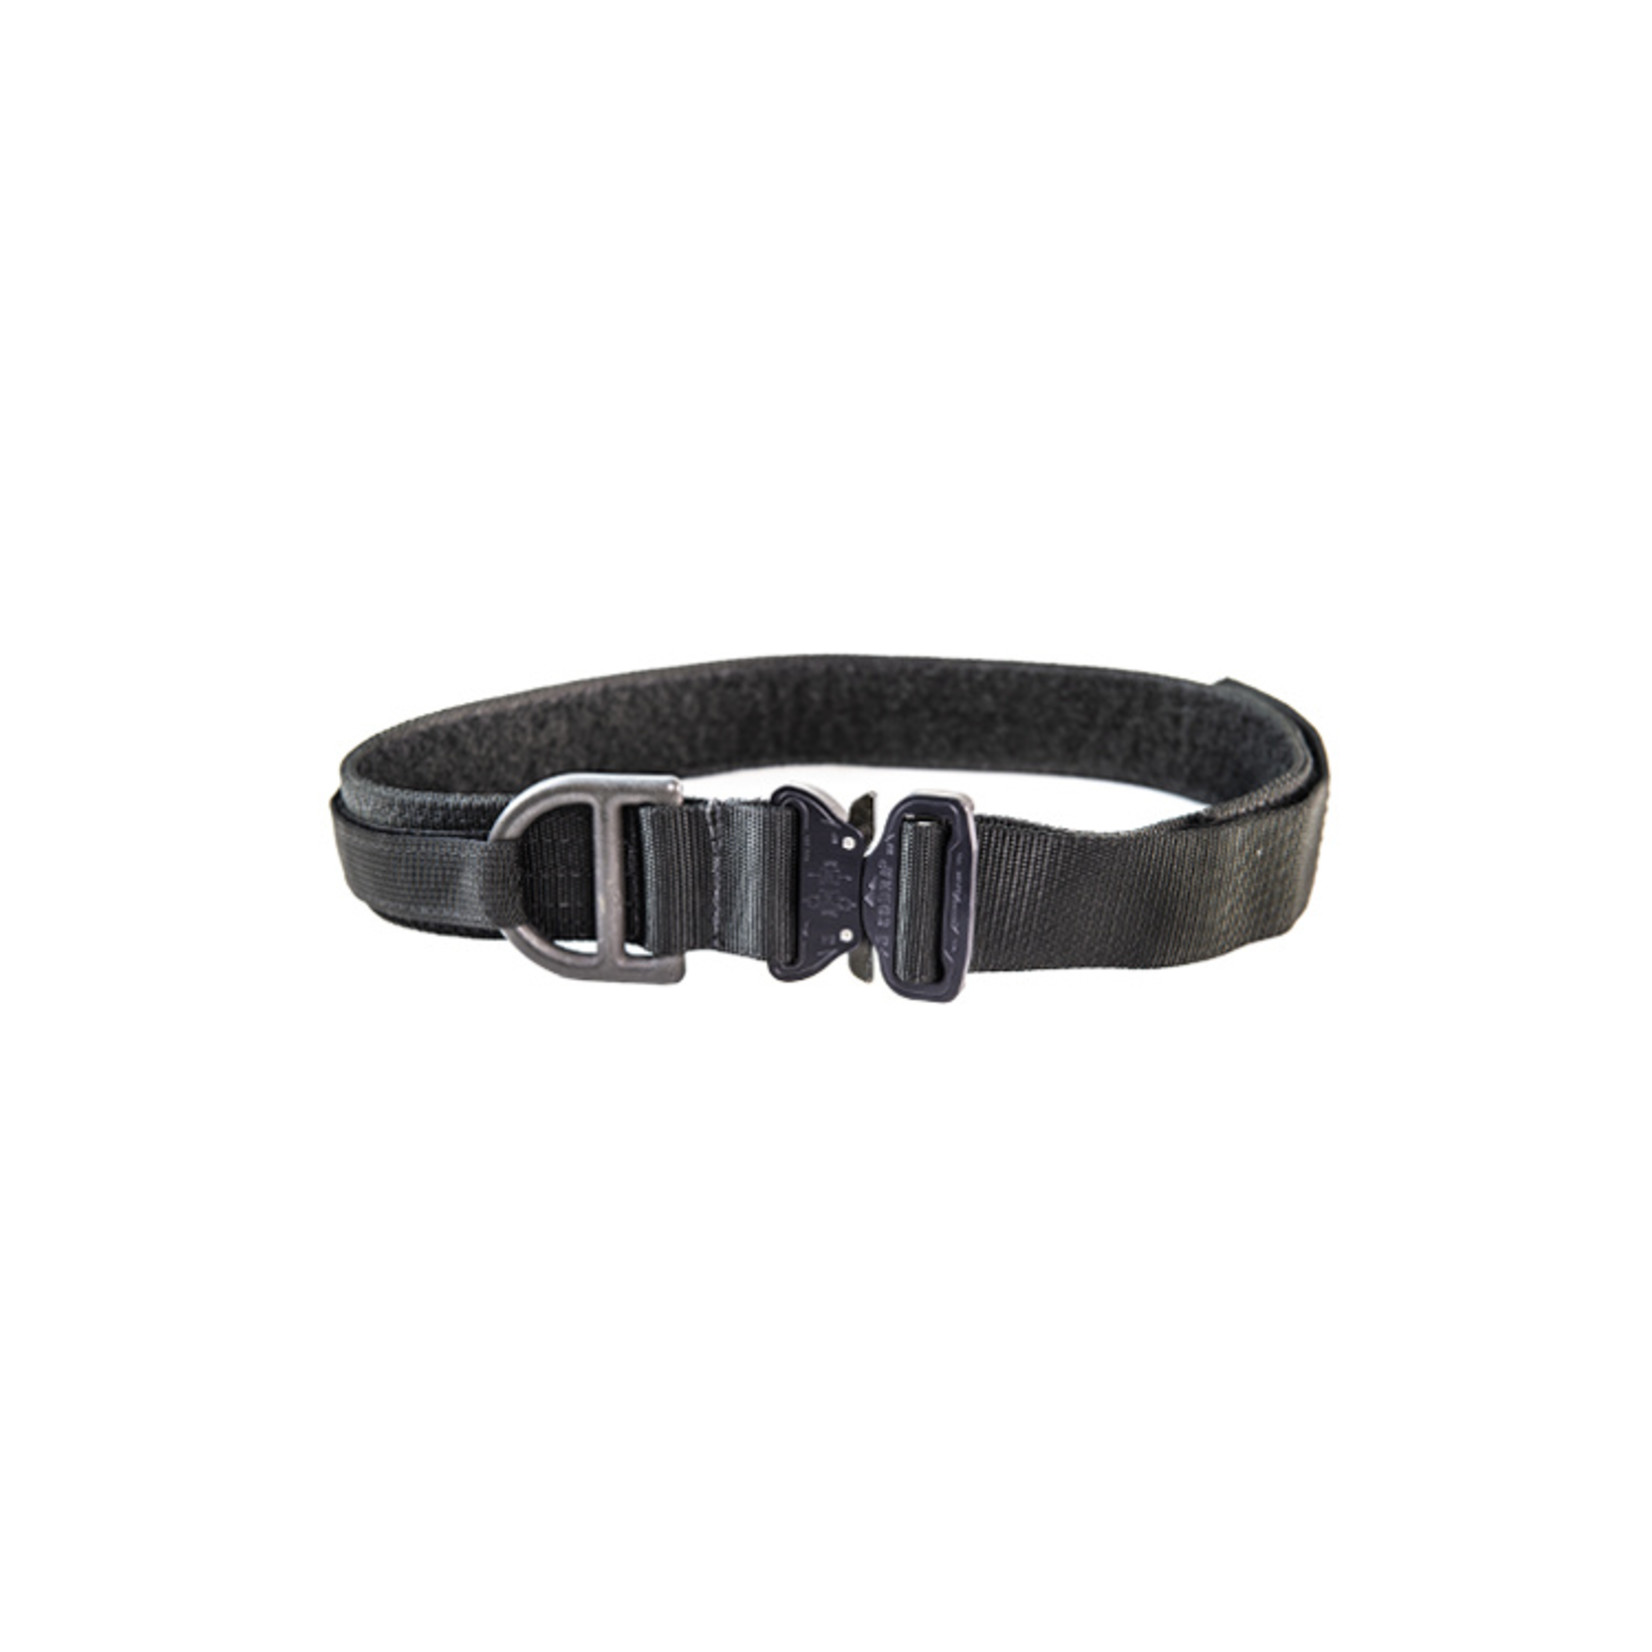 "HIGH SPEED GEAR COBRA 1.75"" RIGGER BELT WITH INTERIOR VELCRO"